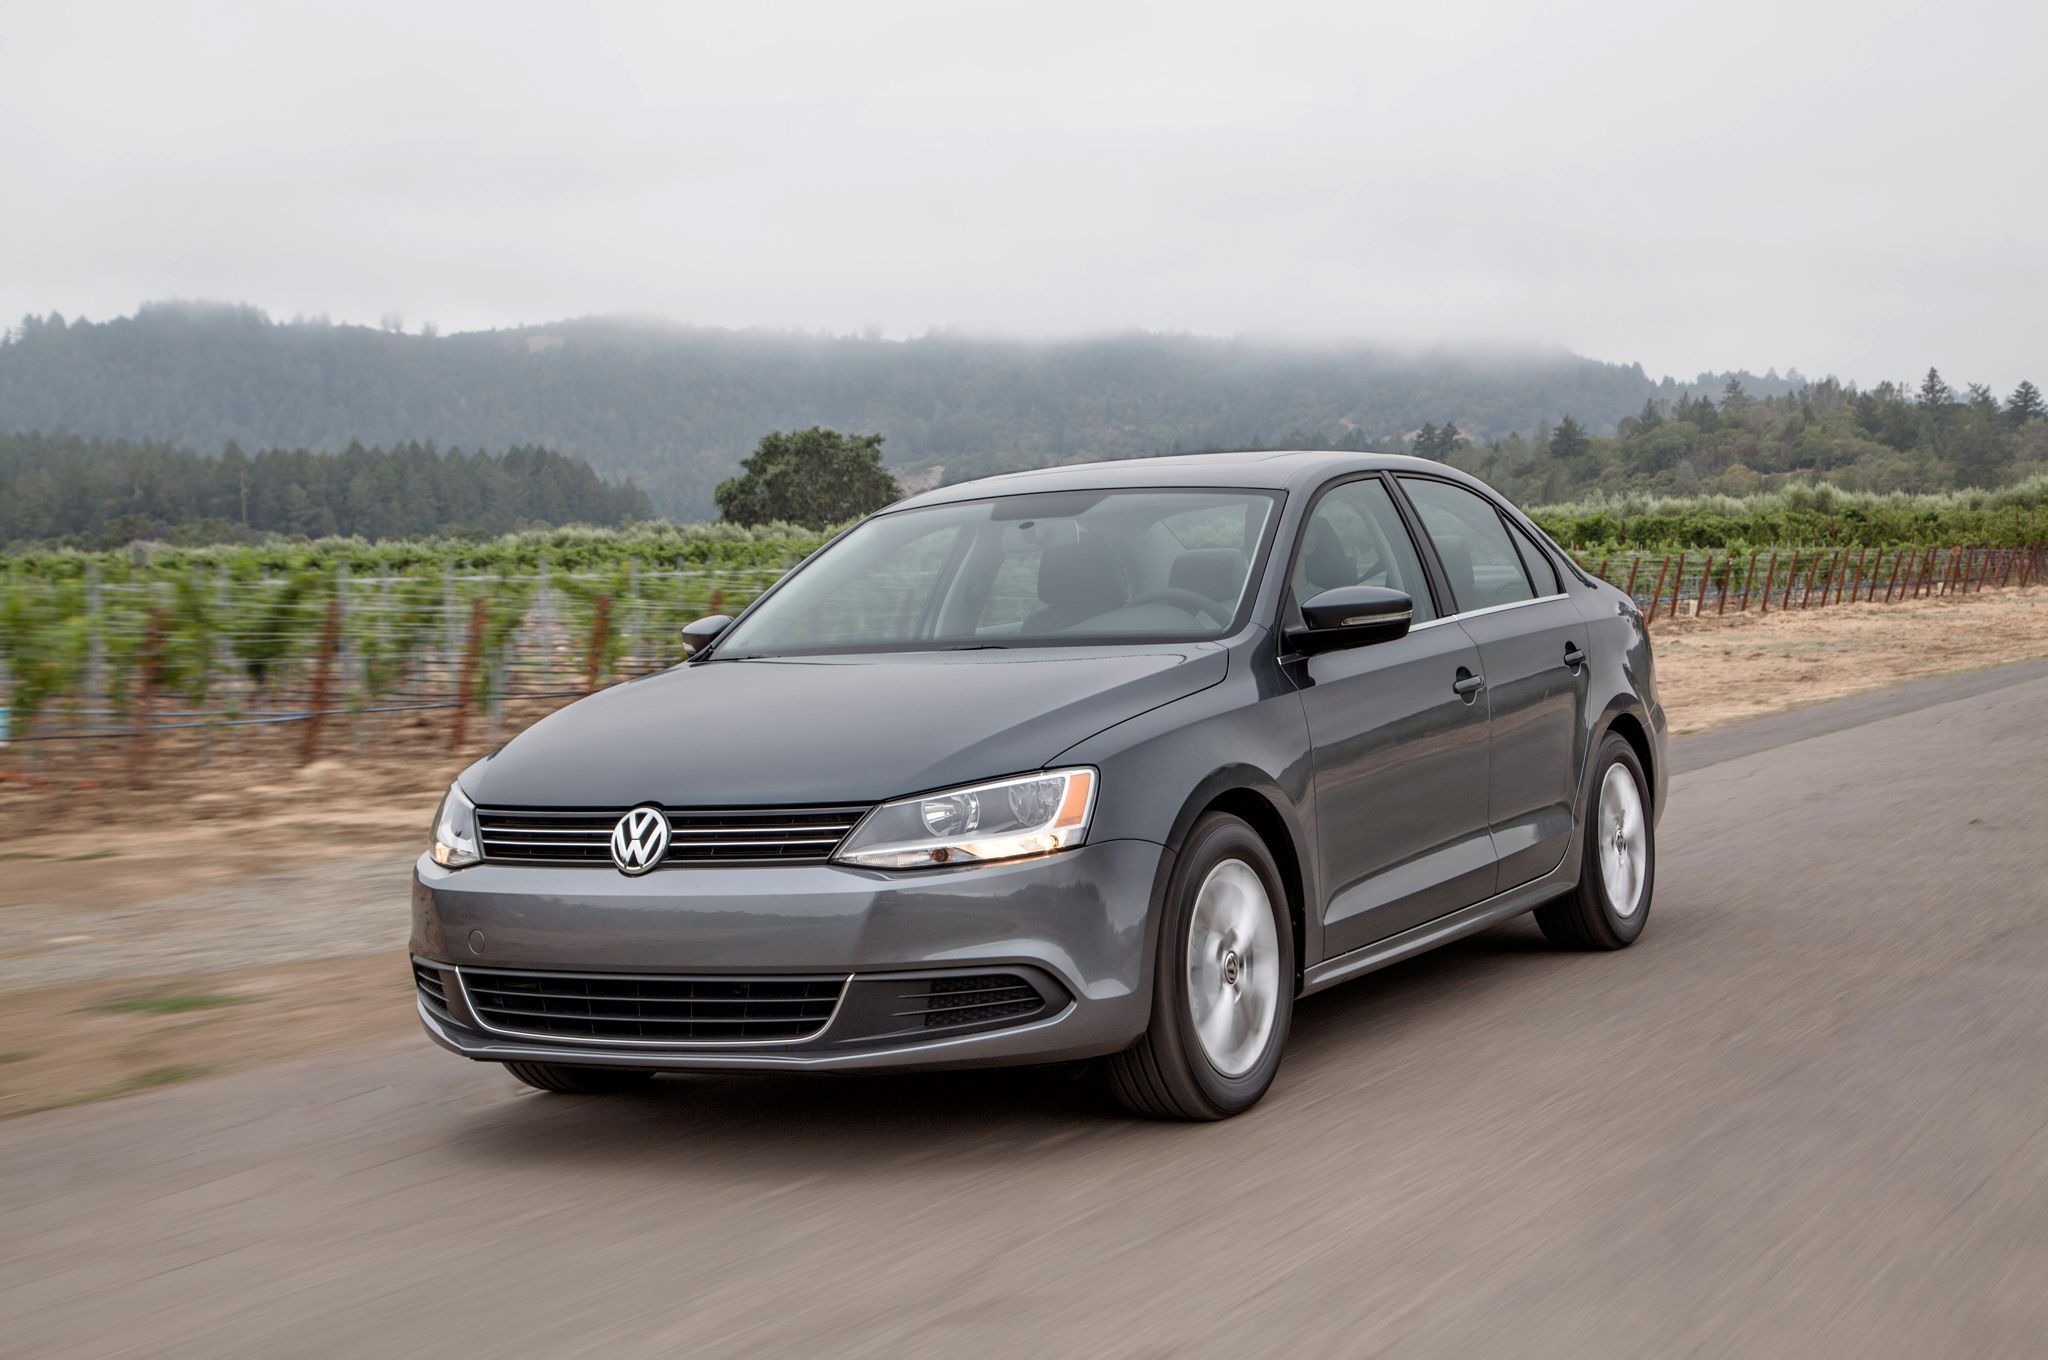 Best 25 jetta 2014 ideas on pinterest volkswagen jetta 2012 jetta and jetta car